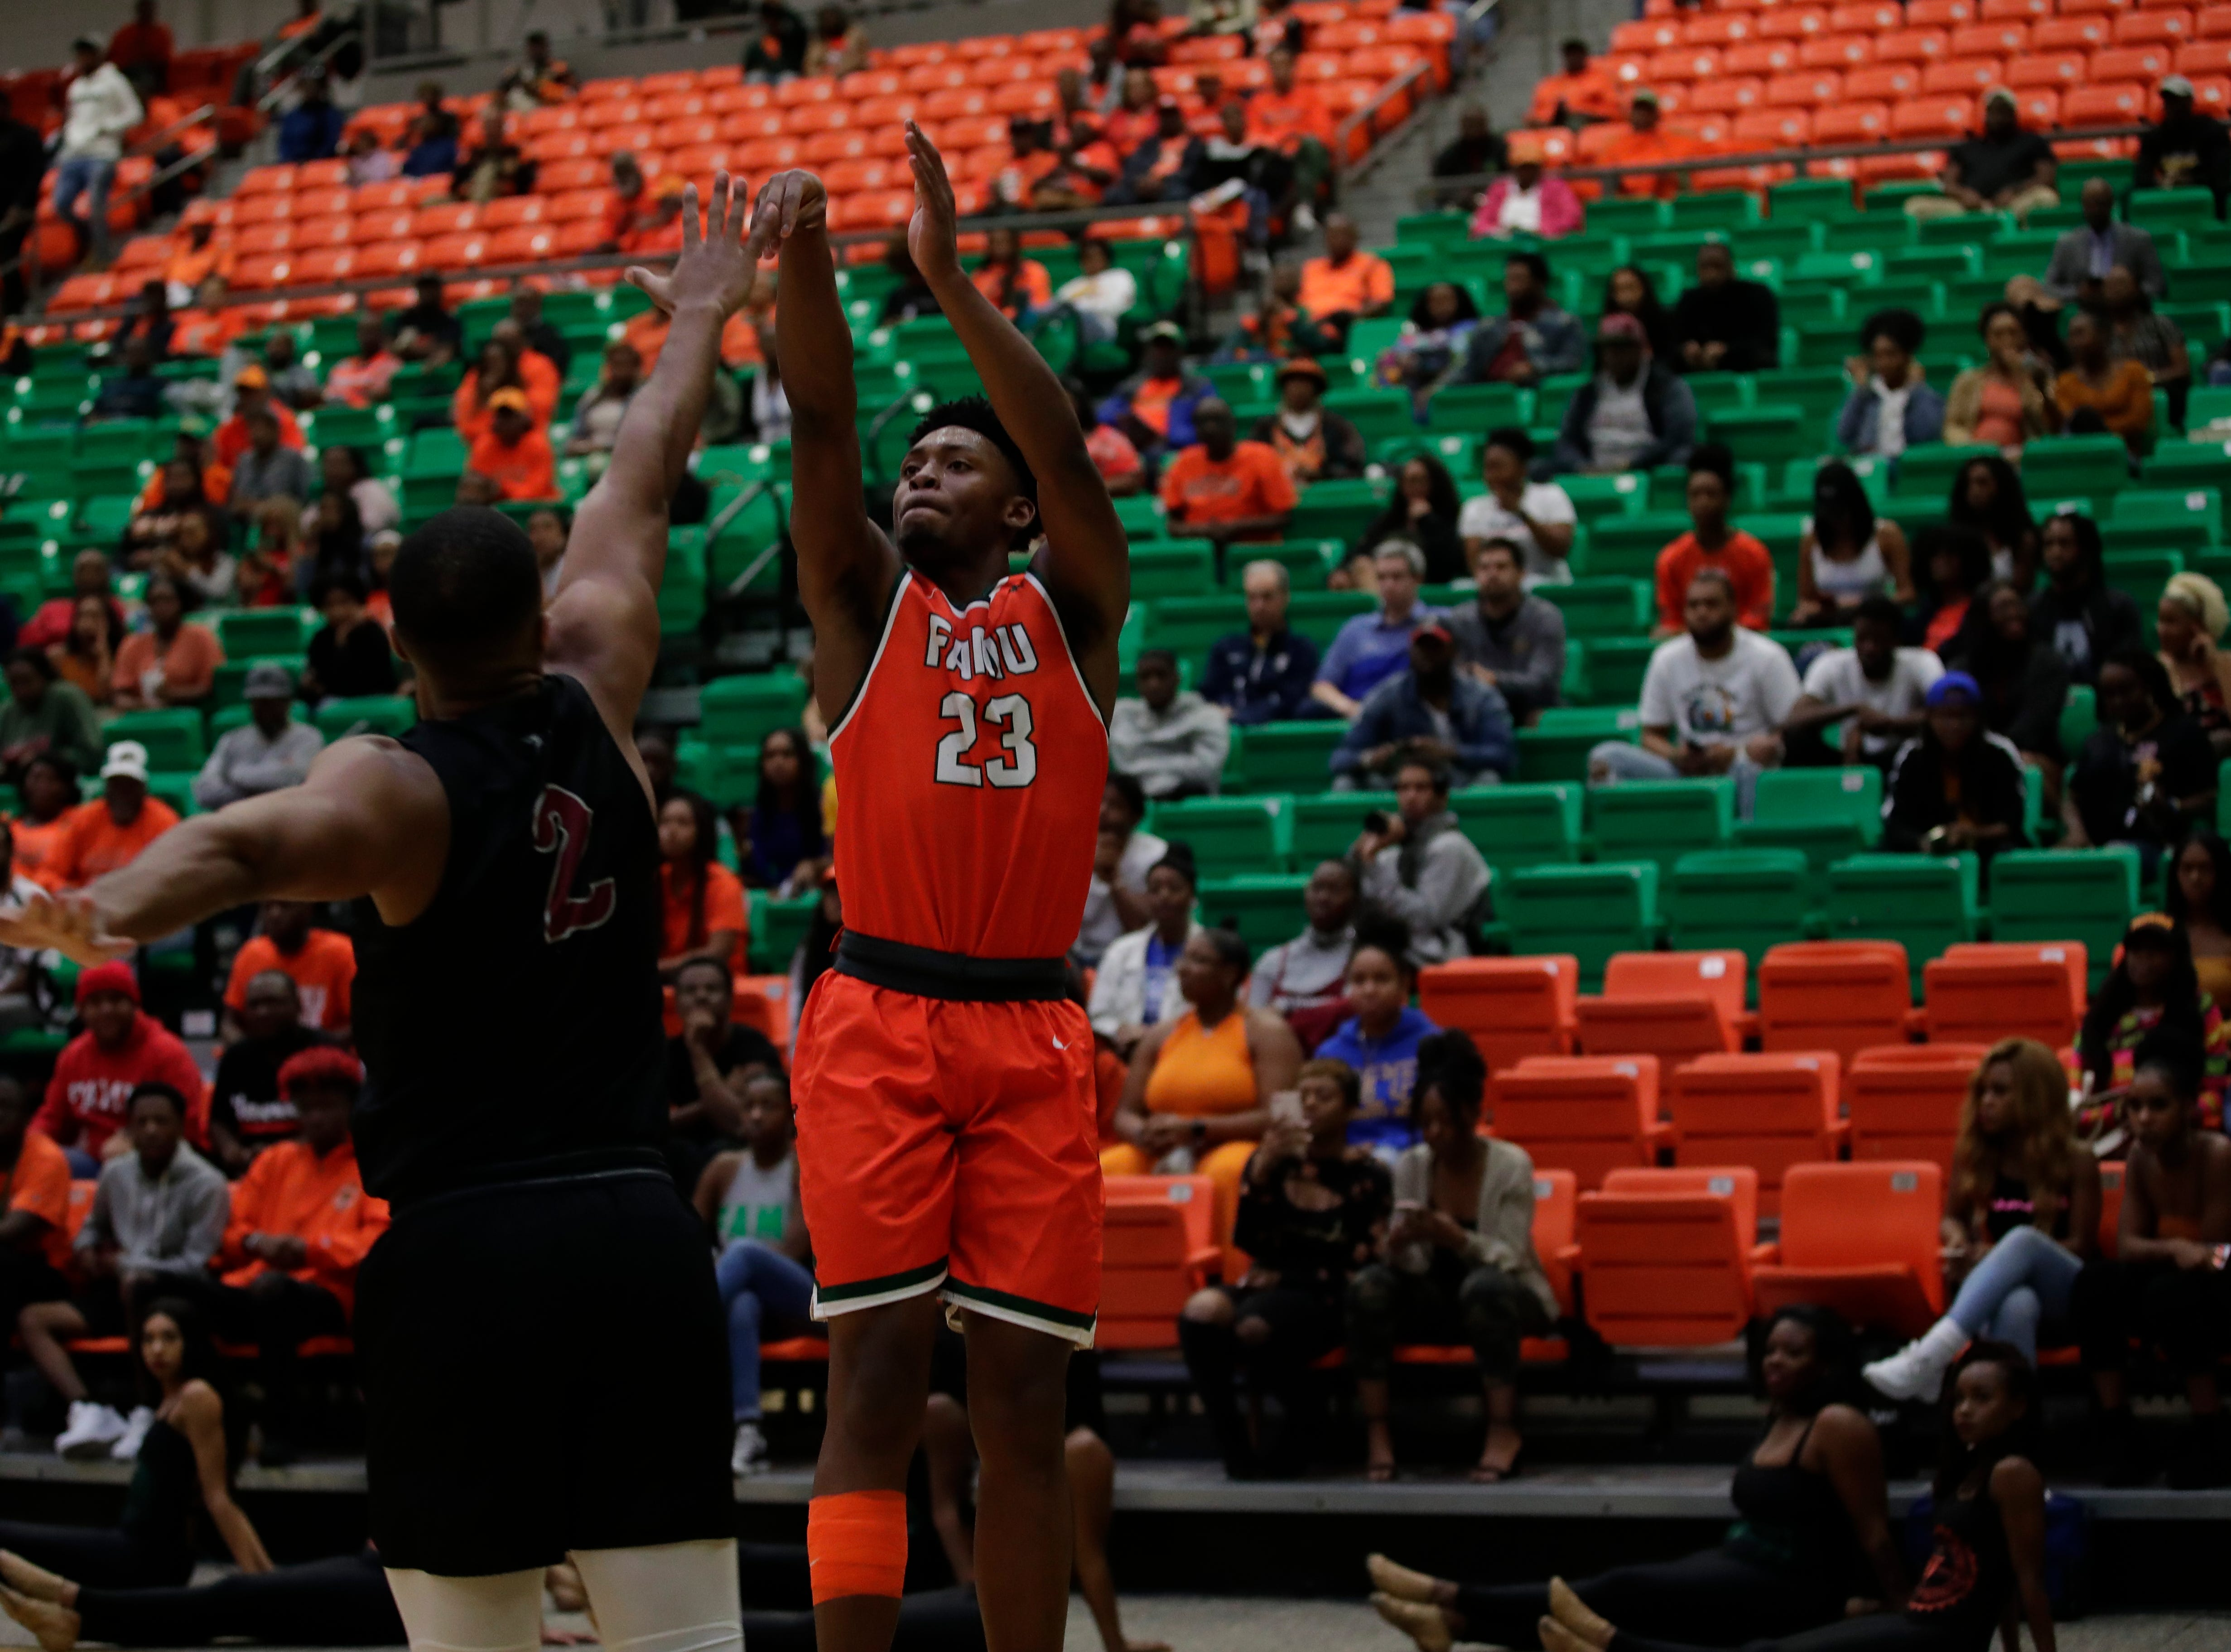 Florida A&M Rattlers forward Bryce Moragne (23) shoots a three-point shot during a game against North Carolina Central at the Alfred Lawson Jr. Multipurpose Center Monday, Feb. 4, 2019.